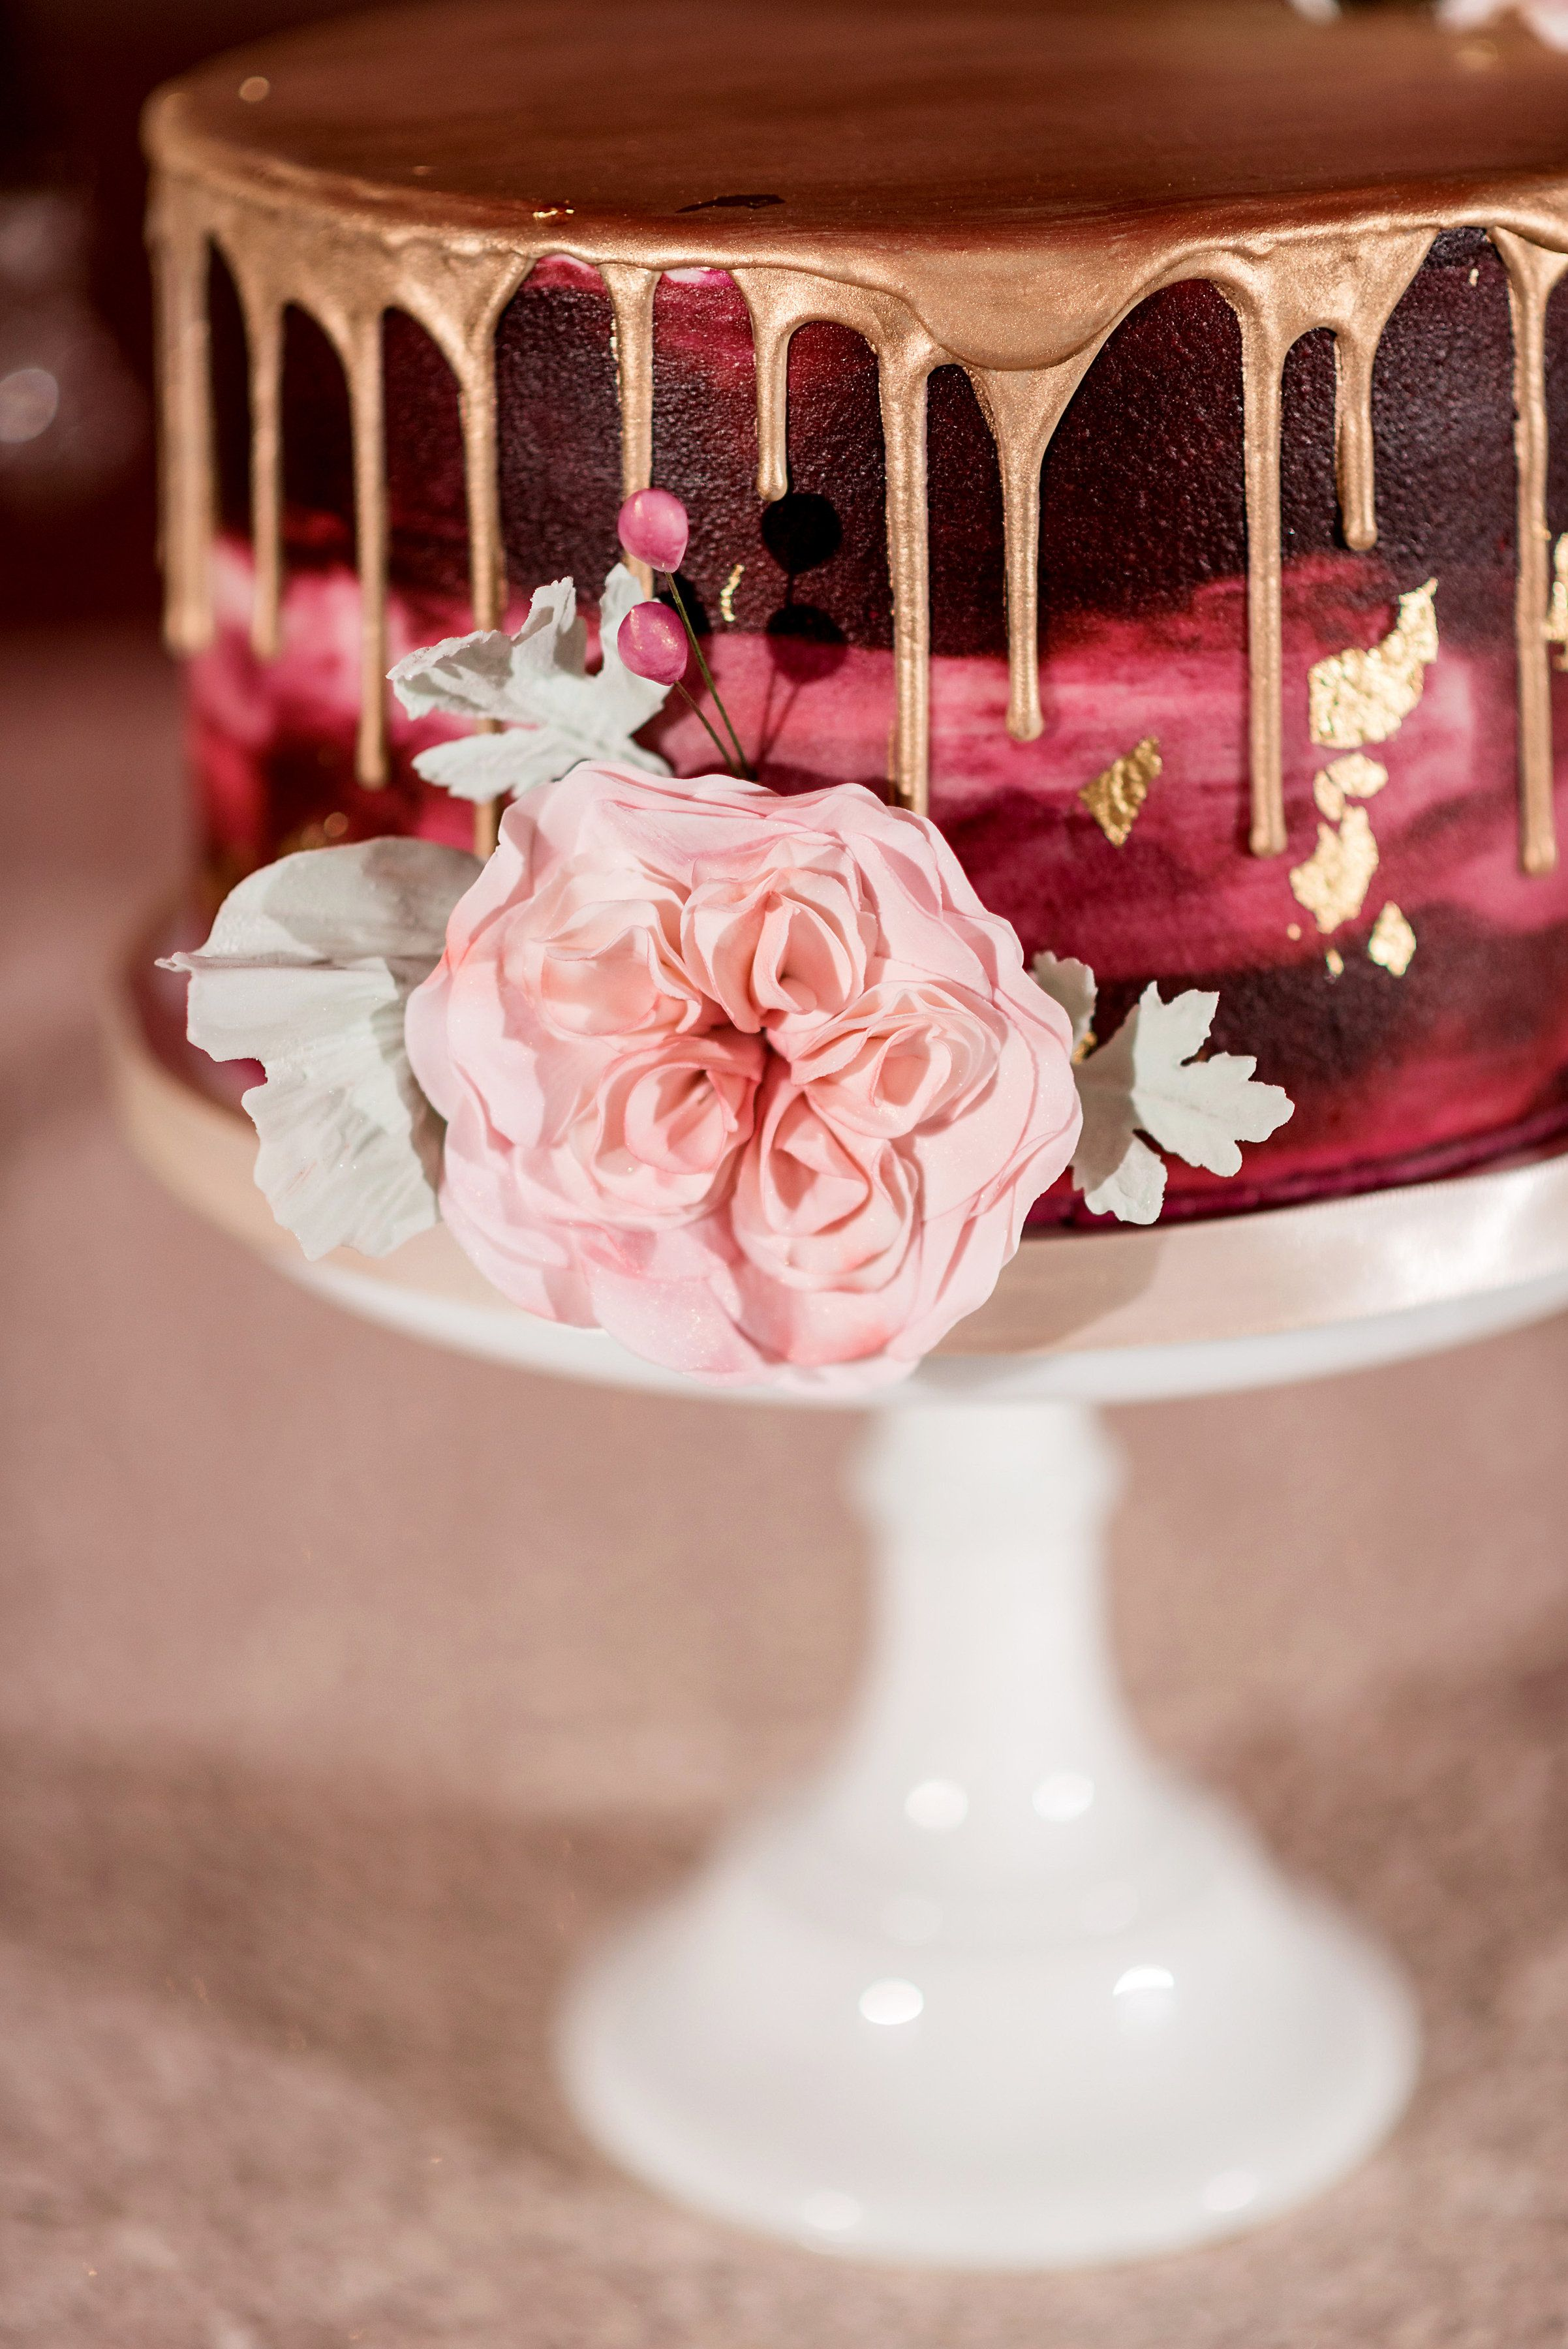 Water Color Ercream Cranberry Sugar Flower Cabbage Rose Wedding Cake Gold Leaf Drizzle Lemon Display Photo By